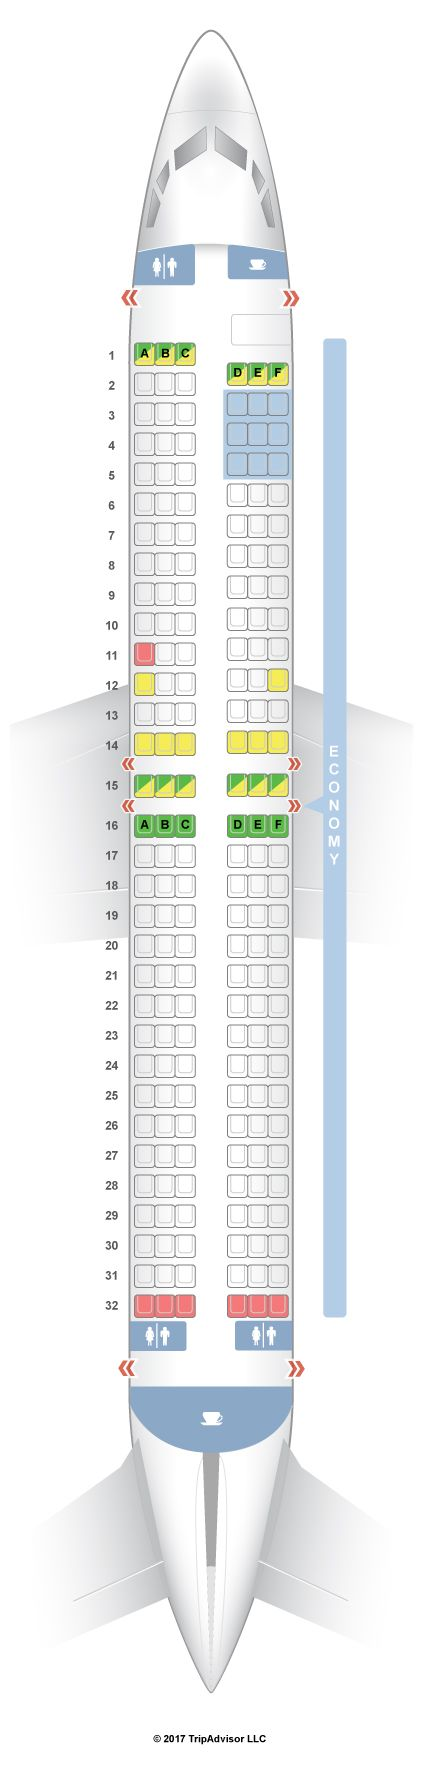 Seatguru Seat Map Thomson Boeing 737 800 738 Seatguru Seatguru Spirit Airlines Qatar Airways